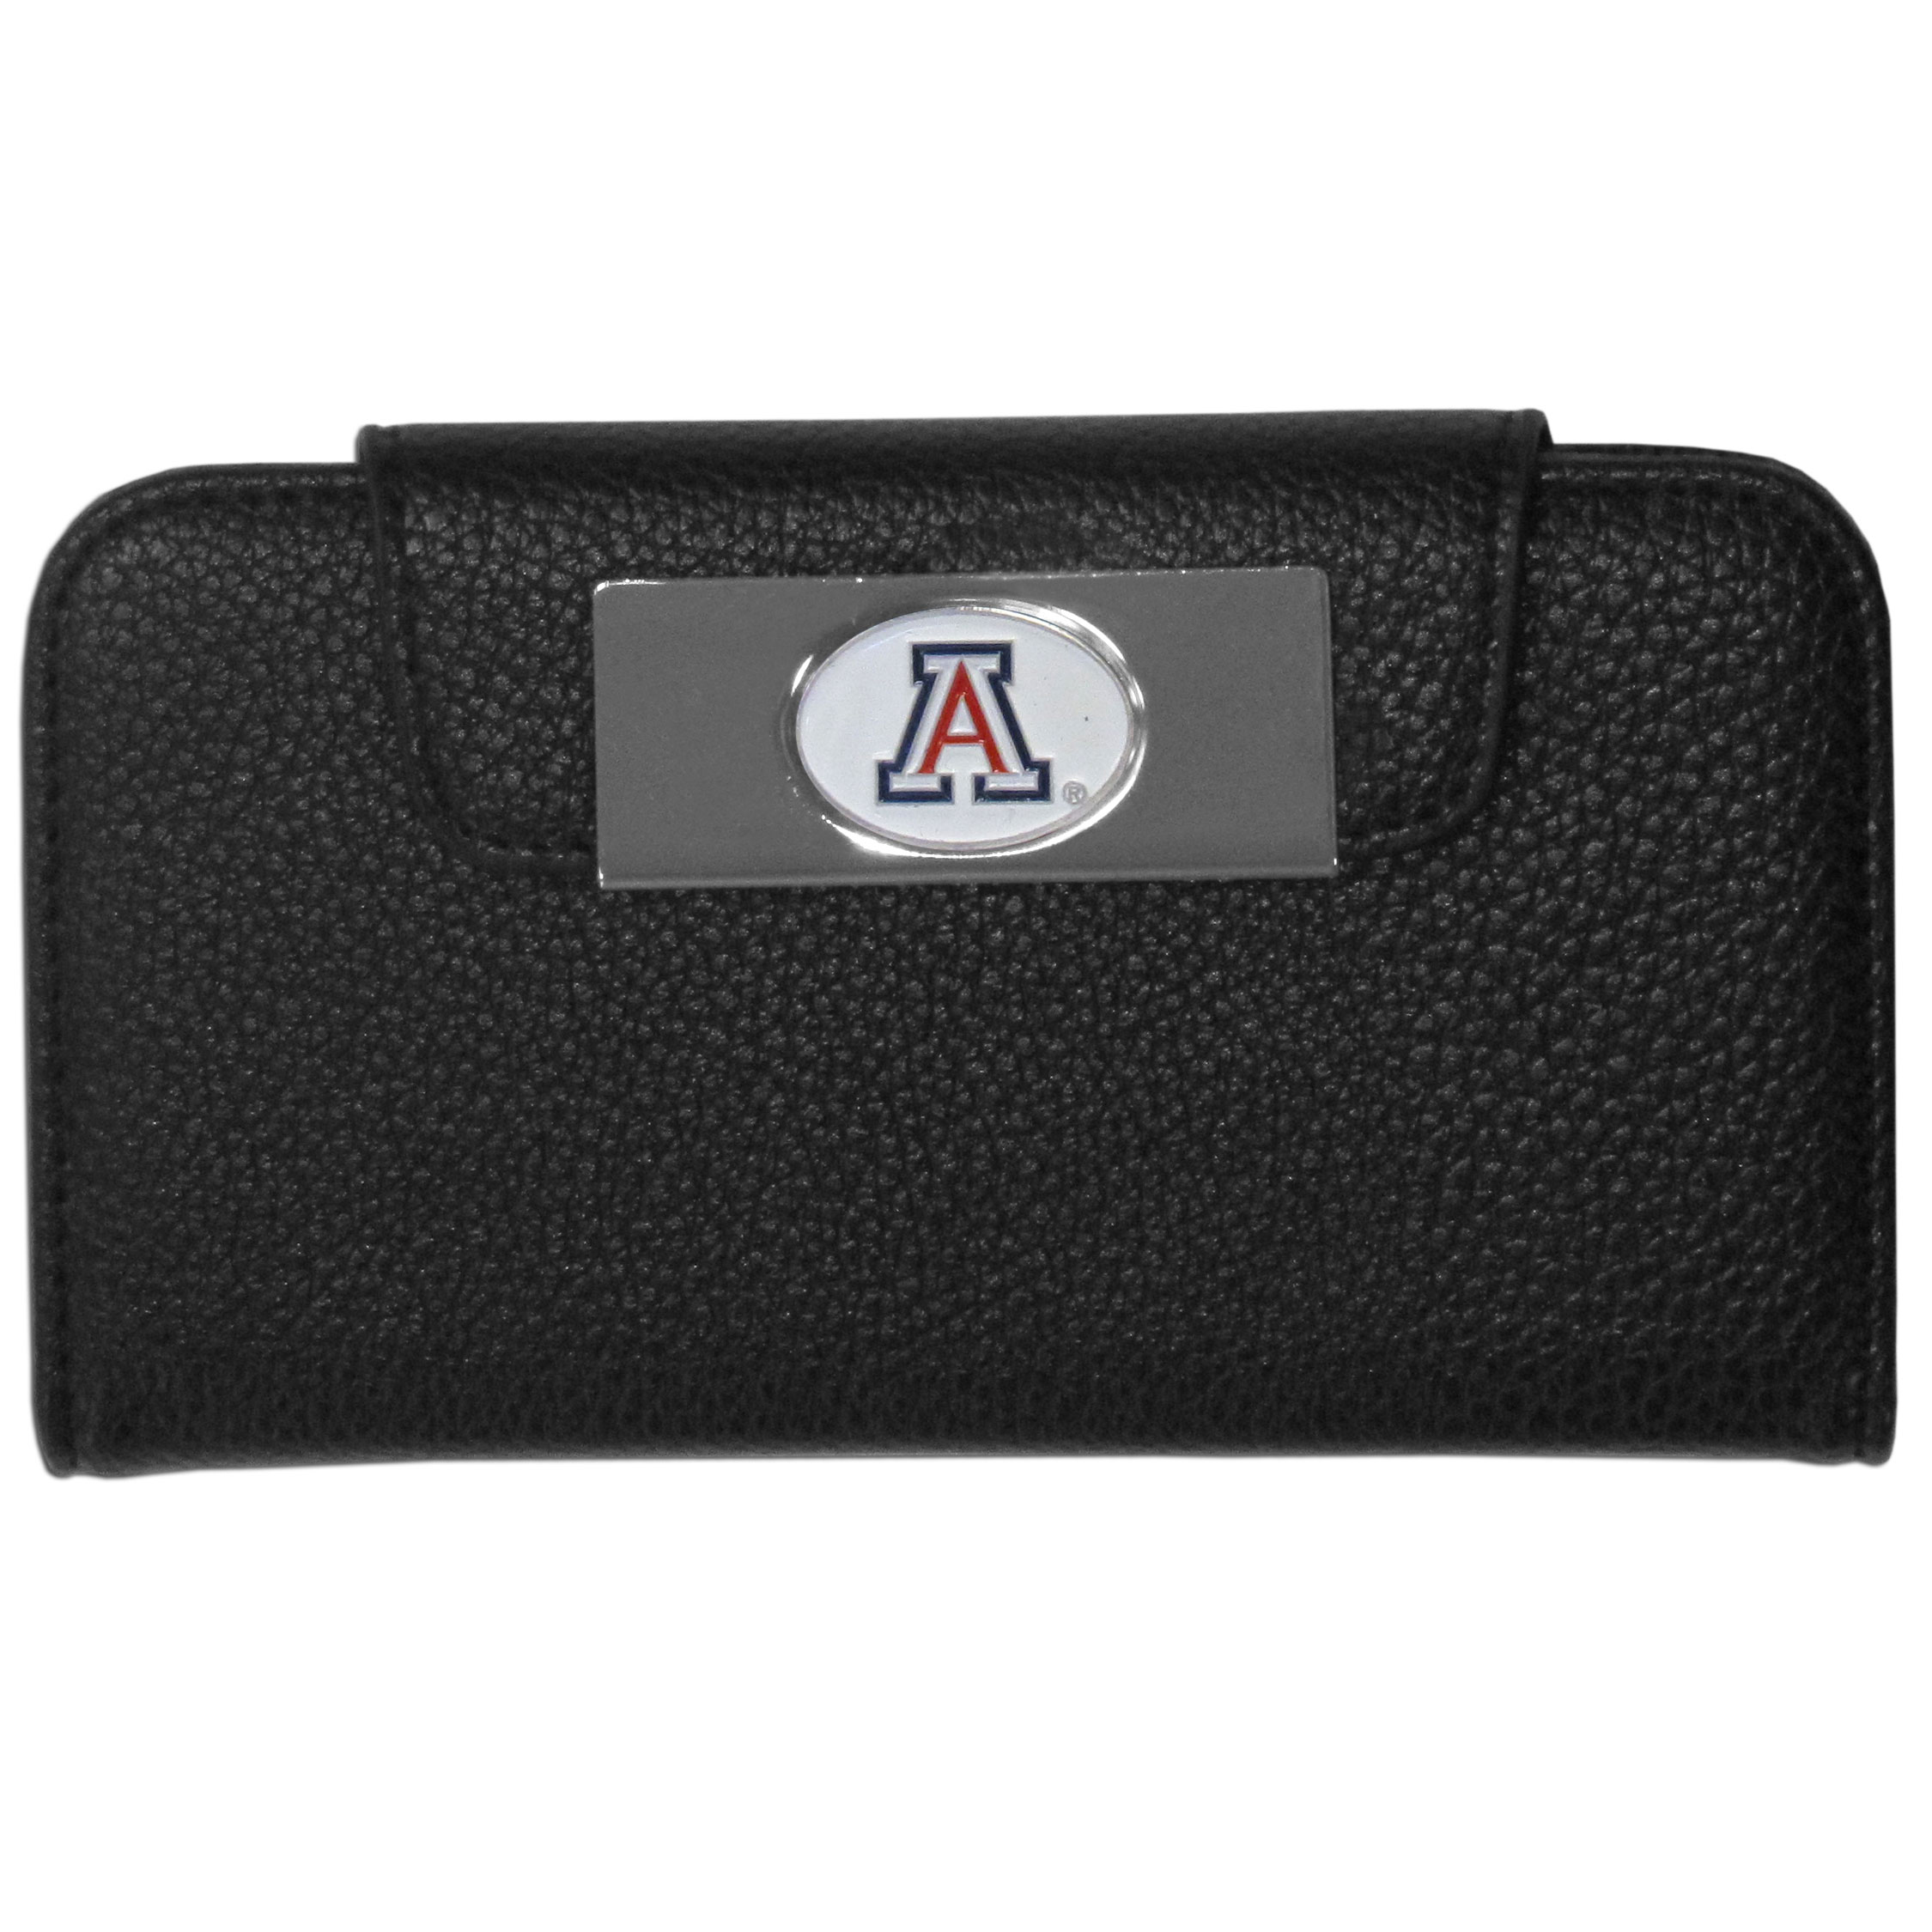 Arizona Wildcats Samsung Galaxy S4 Wallet Case - This new & wildly popular case is ideal for those who like to travel light! The stylish case has an inner hard shell that securely holds your phone while allowing complete access to the phone's functionality. The flip cover has slots for credit cards, business cards and identification. The magnetic flip cover has a metal Arizona Wildcats emblem on a high polish chrome backing. Fits the Samsung Galaxy S4